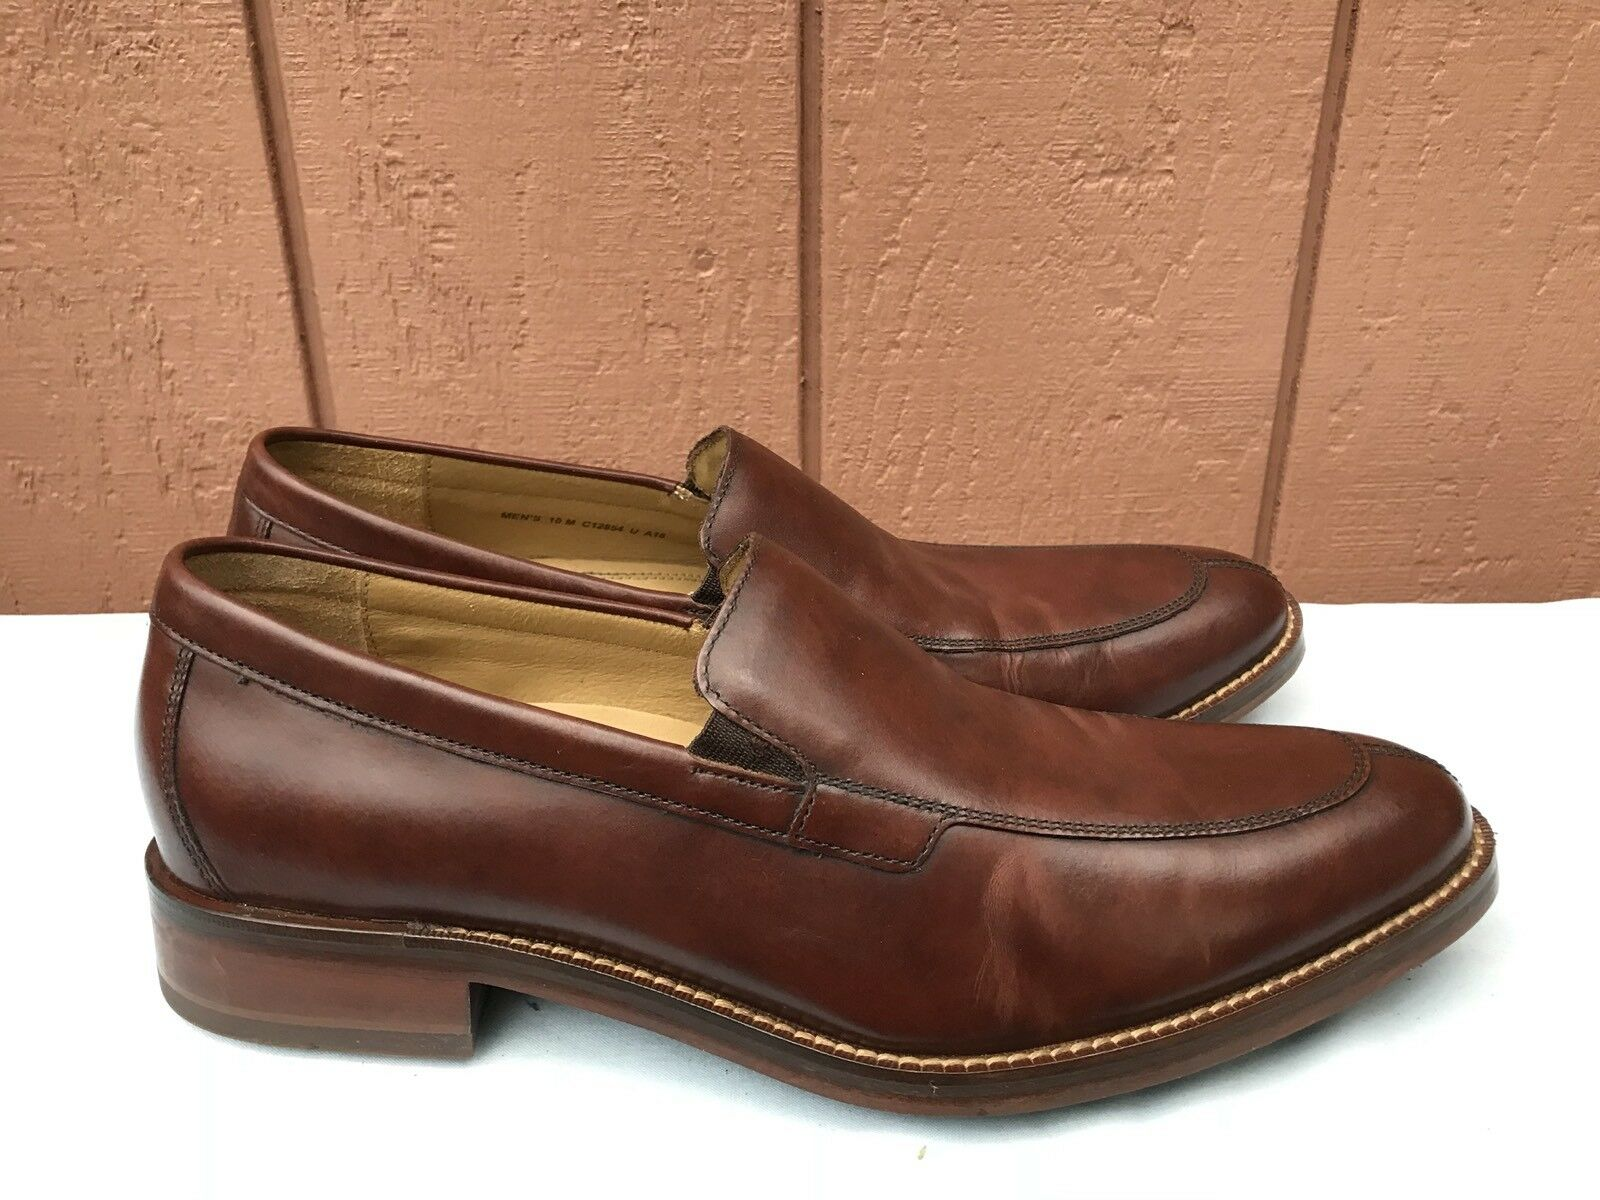 COLE HAAN GRAND OS C12854 10M MADISON SPLIT VENETIAN BROWN SLIP ON LOAFER A6